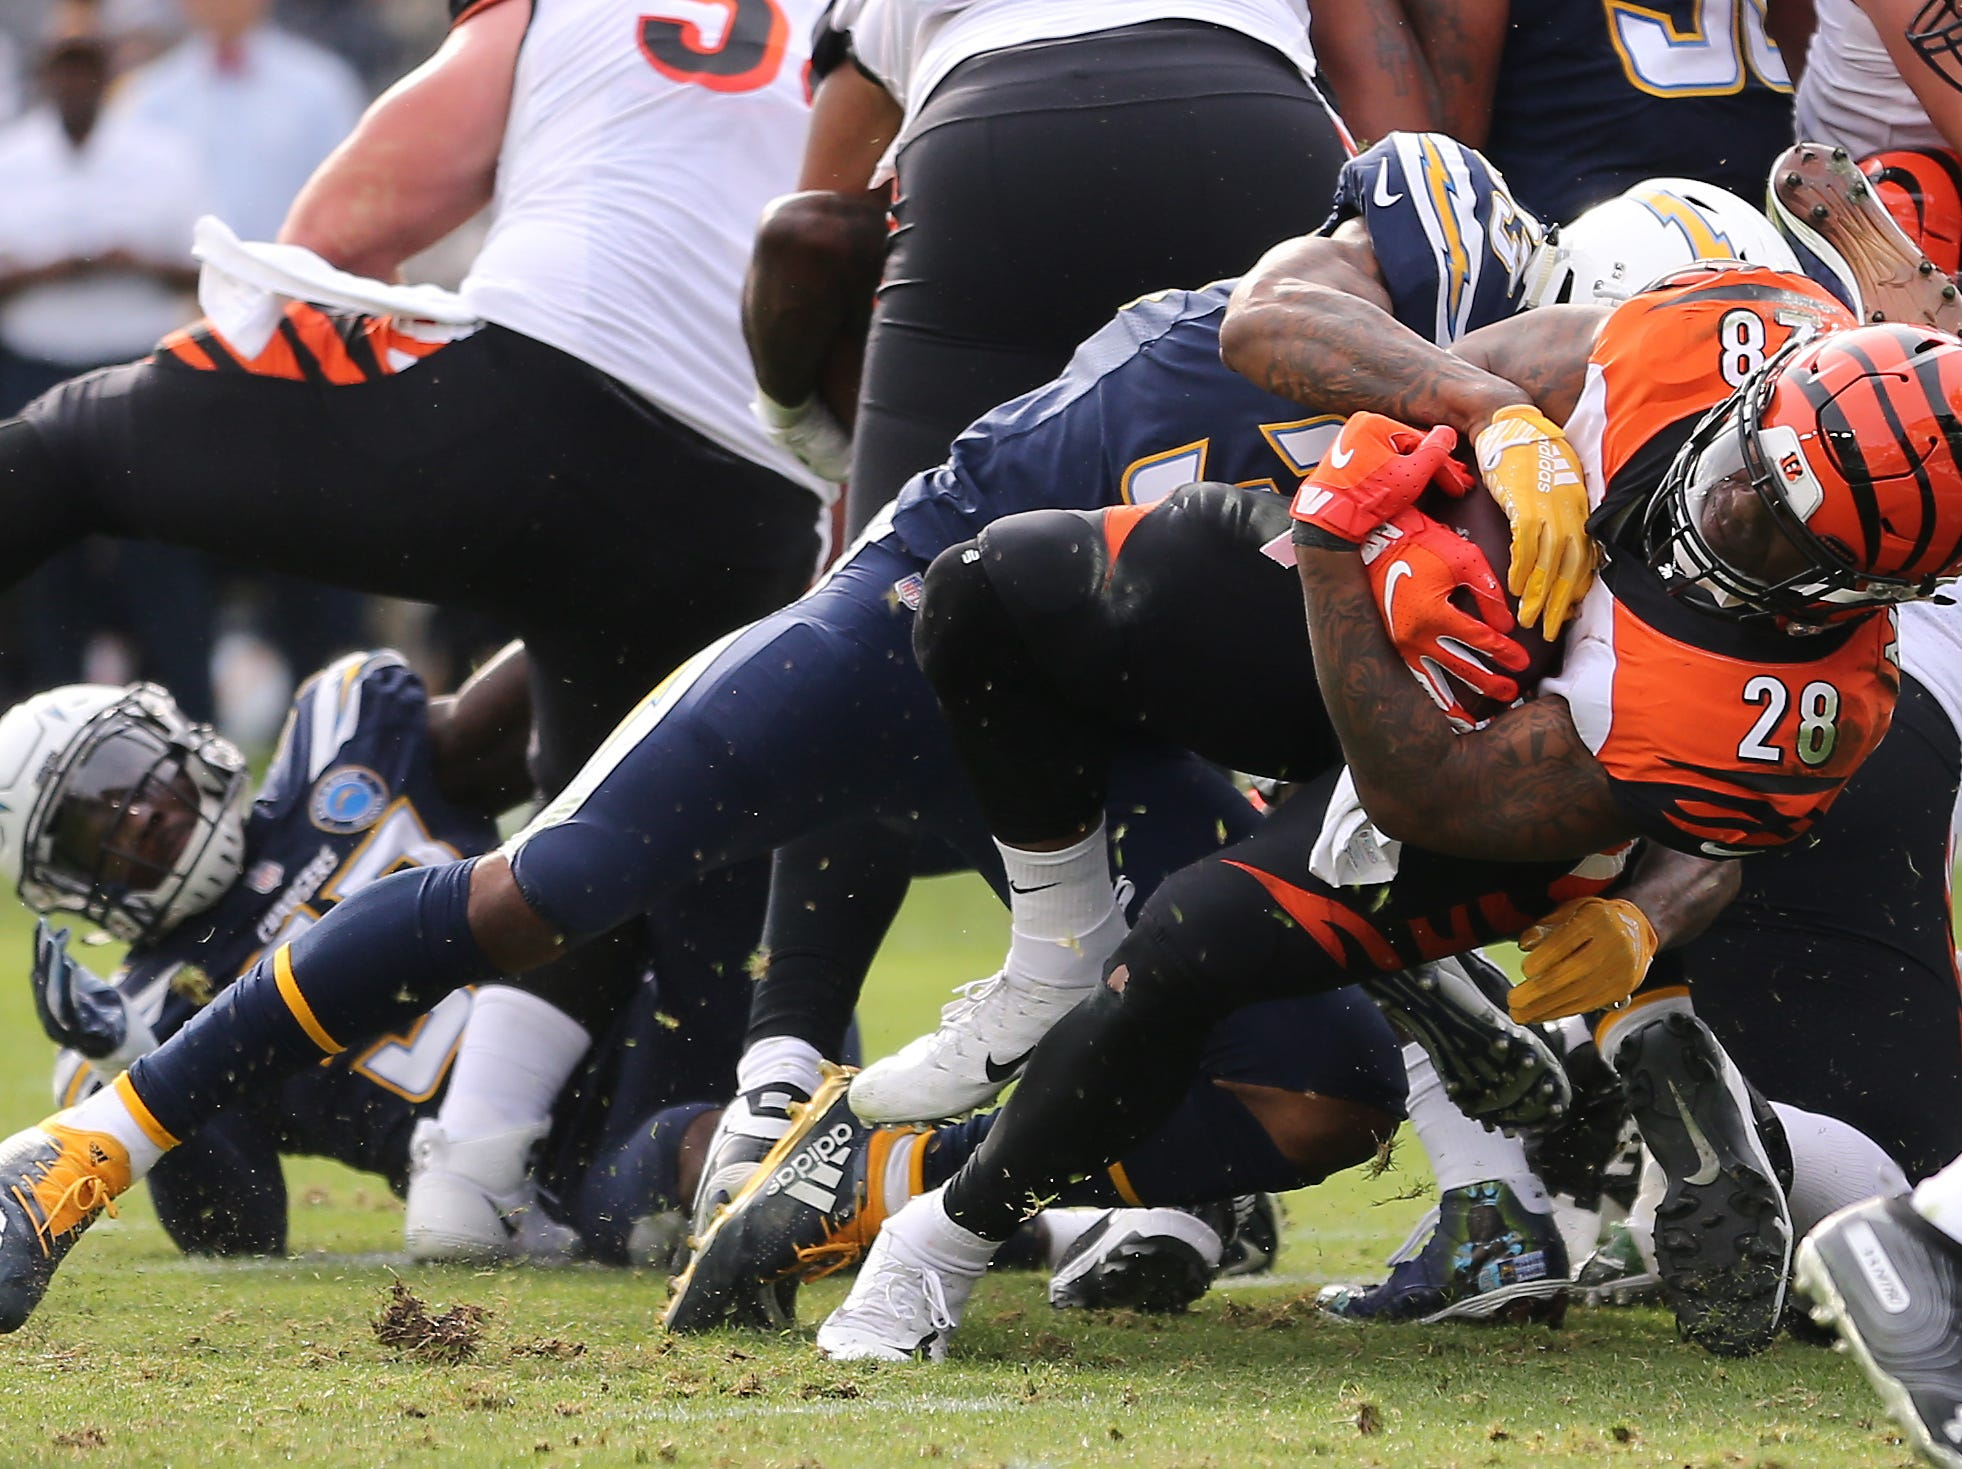 Cincinnati Bengals running back Joe Mixon (28) leans for end zone on a carry in the second quarter of a Week 14 NFL football game against the Los Angeles Chargers, Sunday, Dec. 9, 2018, at StubHub Center in Carson, California.